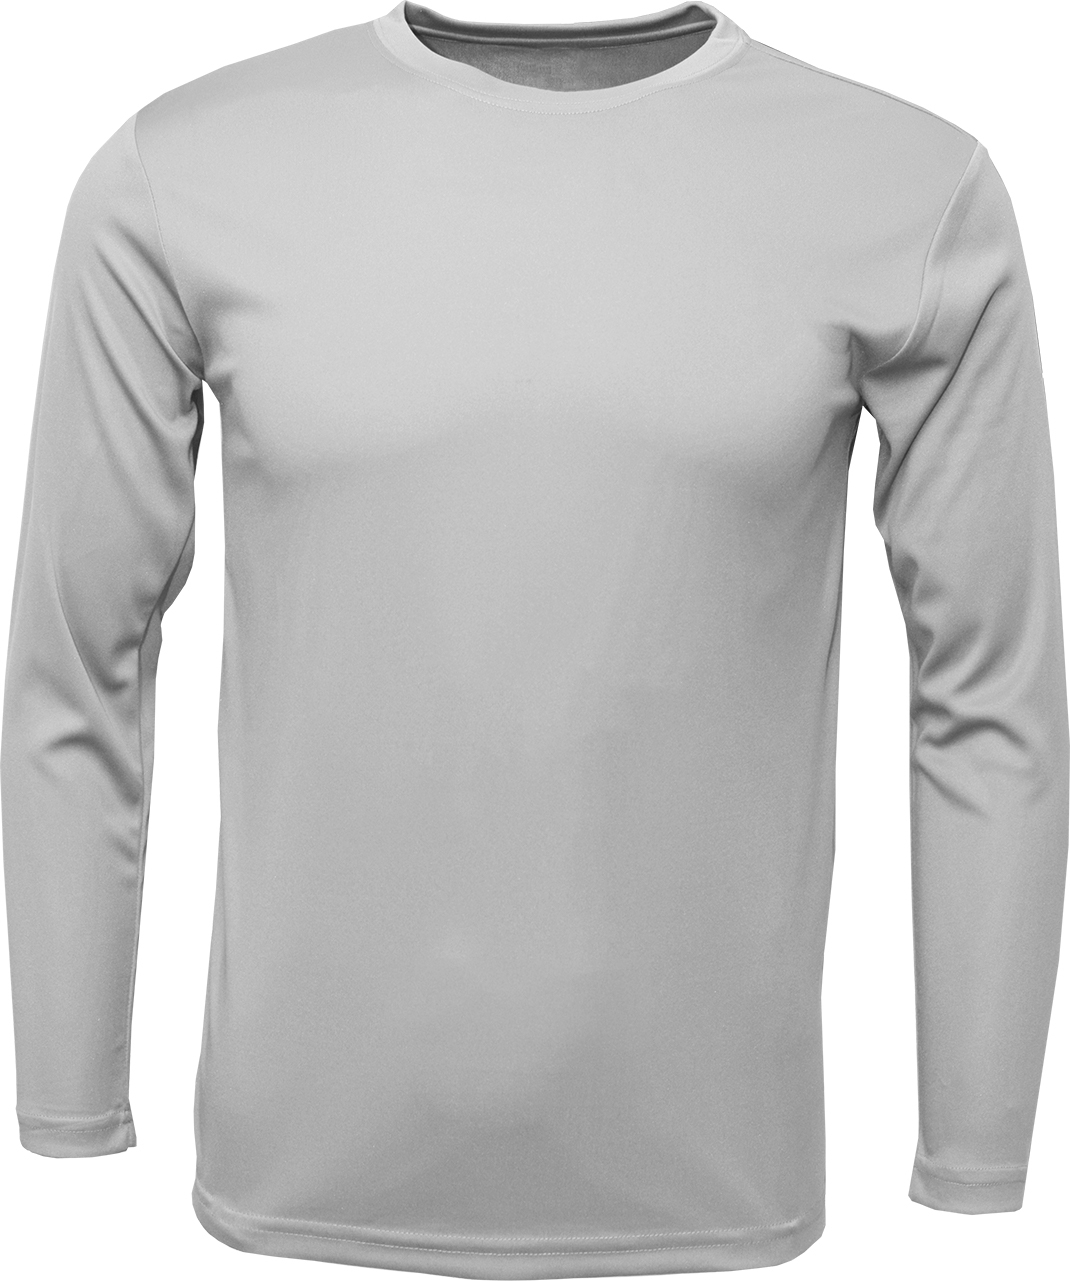 a61e06371 BAW Athletic Wear. XT96